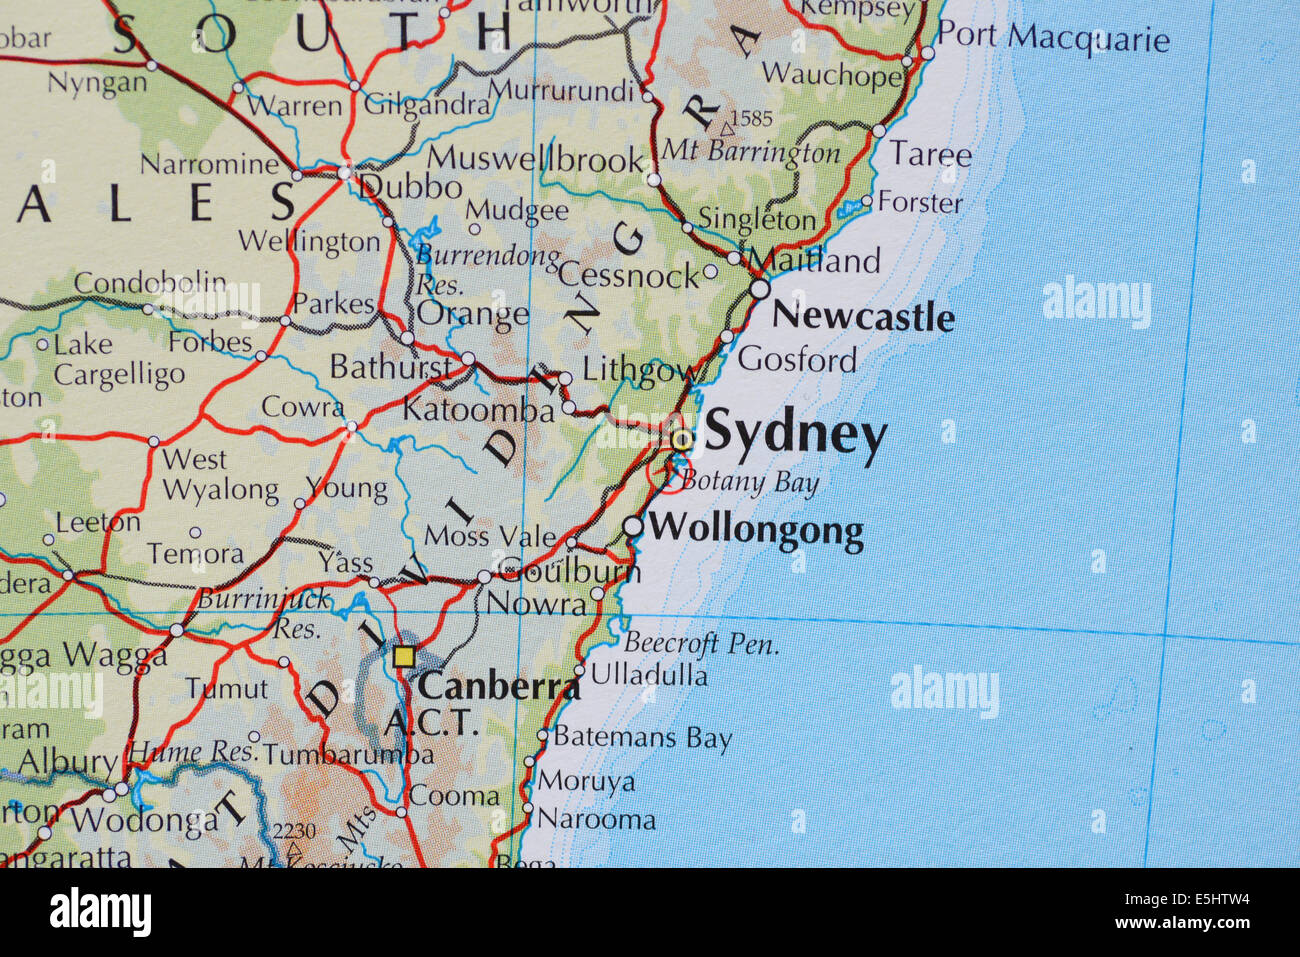 atlas map showing the cities of sydney new south wales australia and the canberra the australian capital